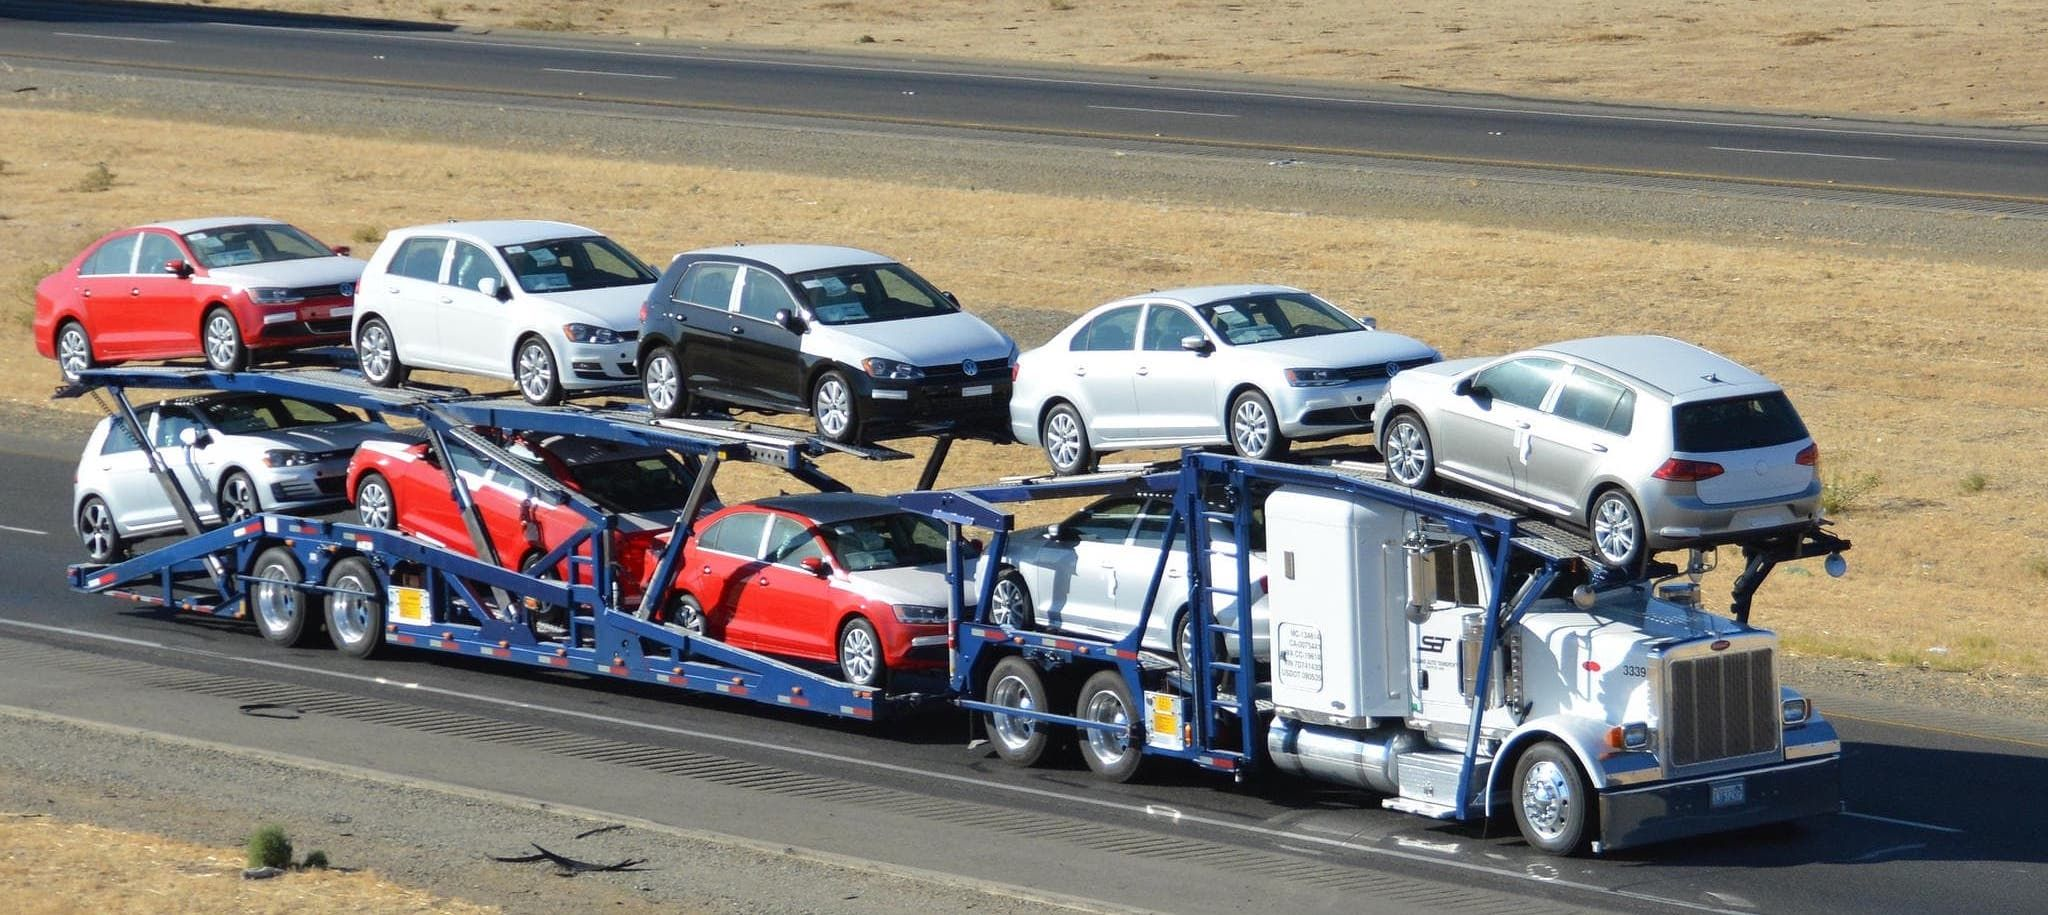 Ensure the safety of your car through transportation